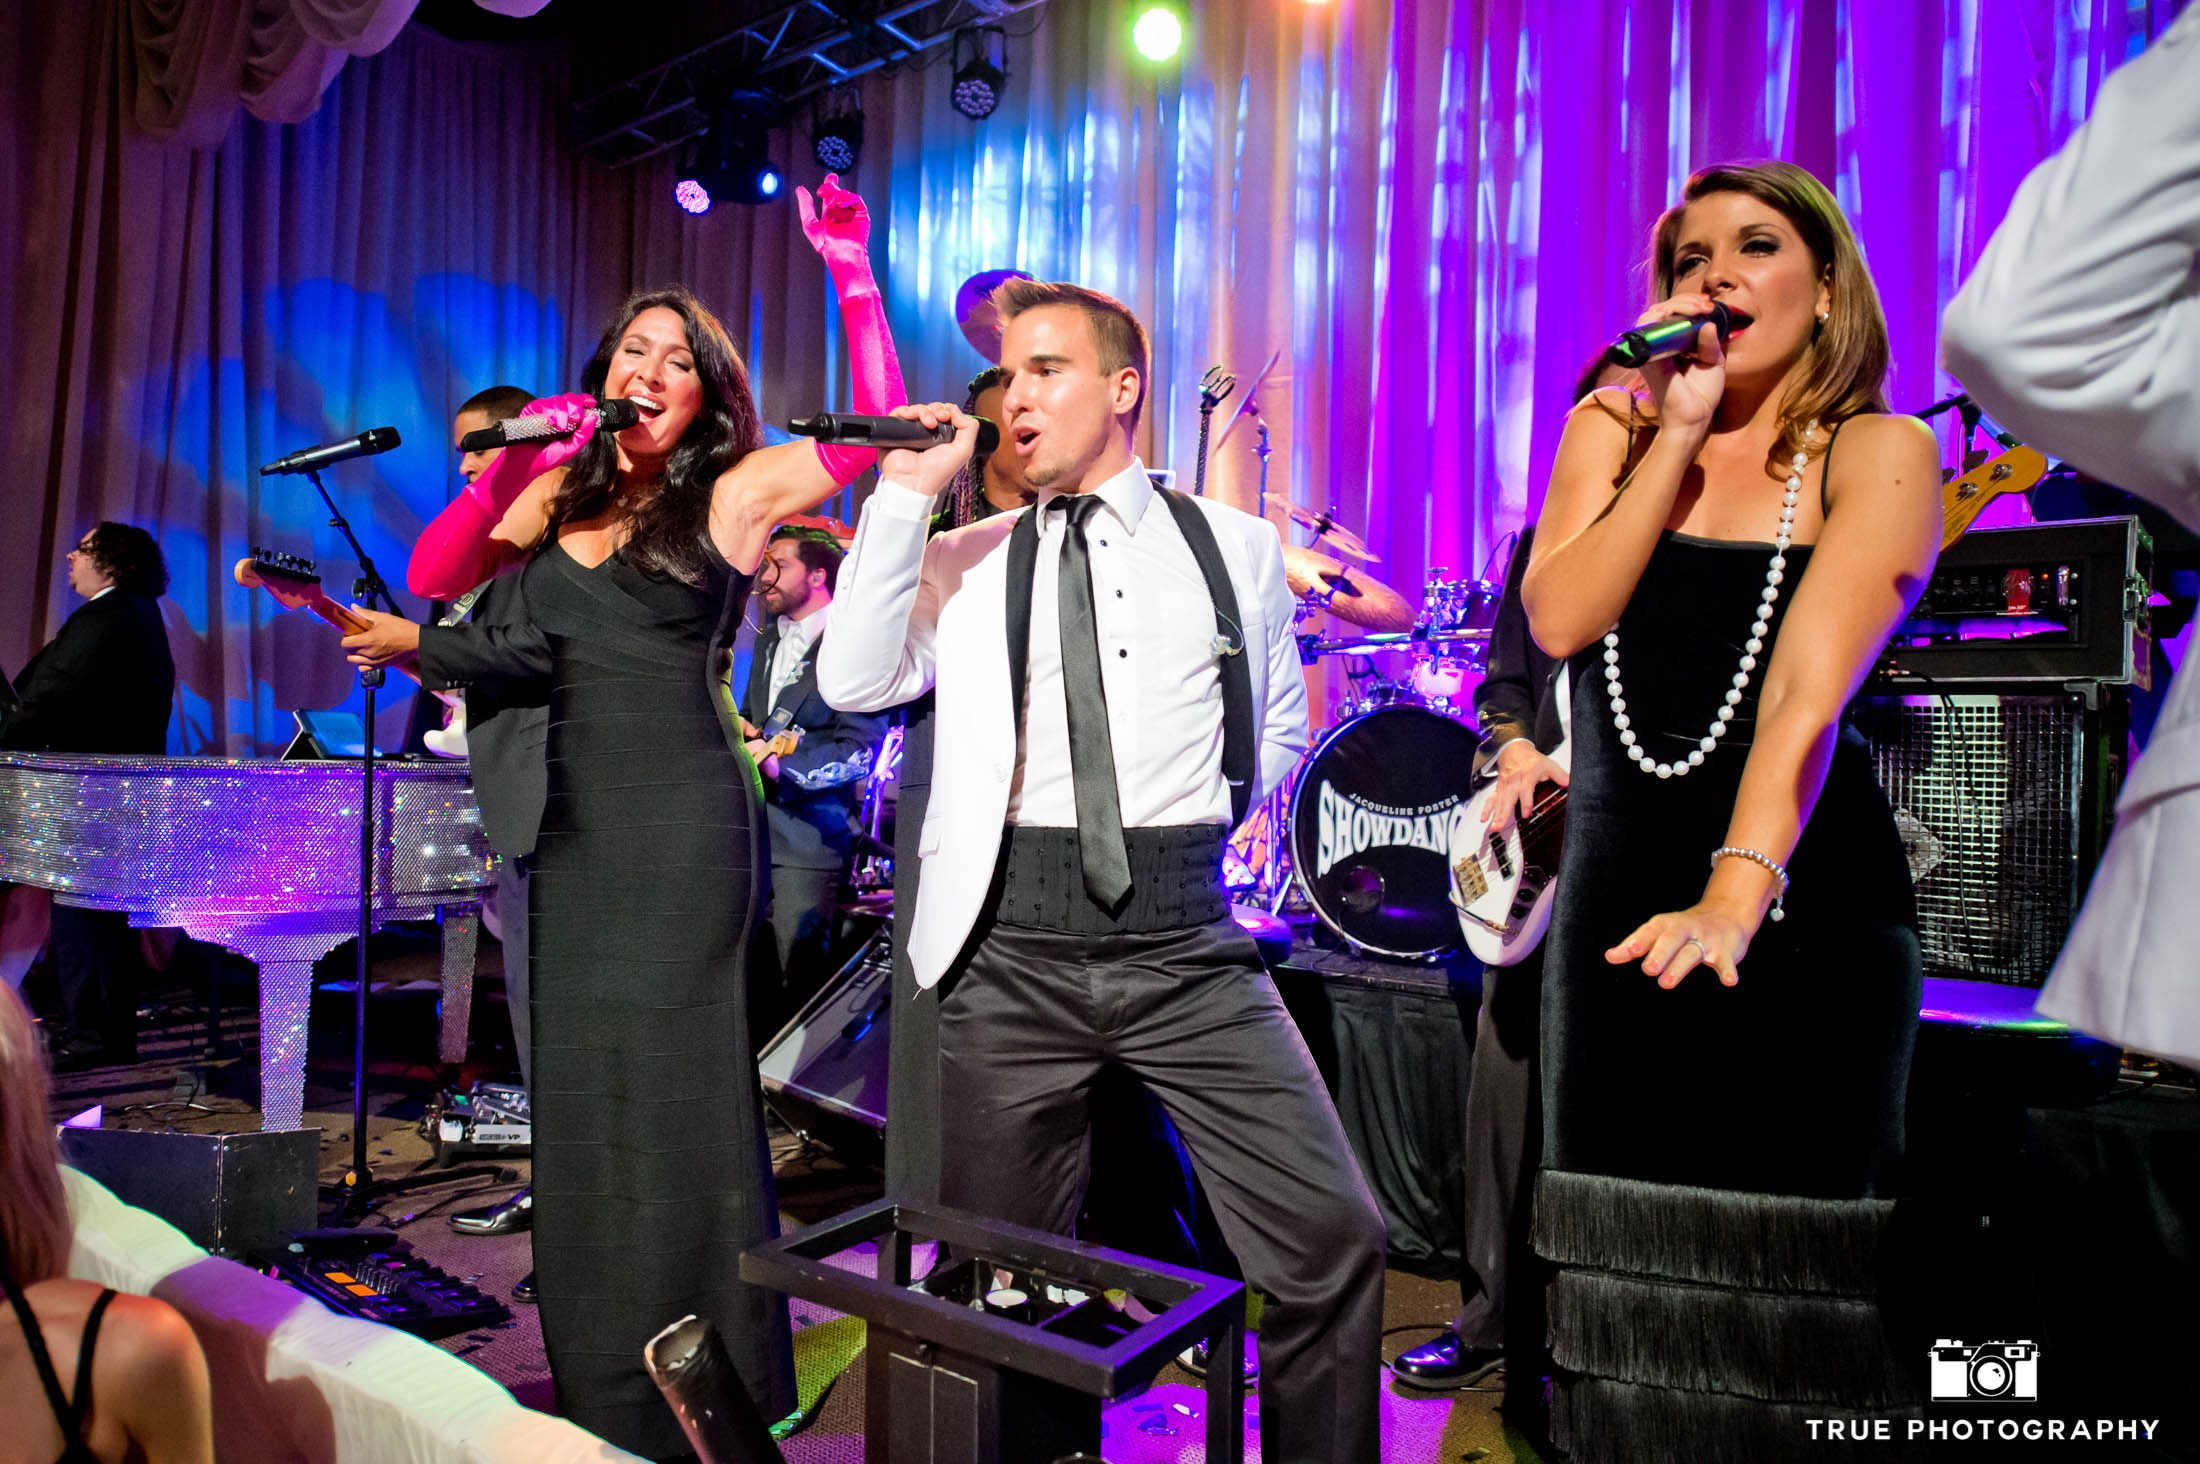 Fun, live band perform for guests during wedding reception